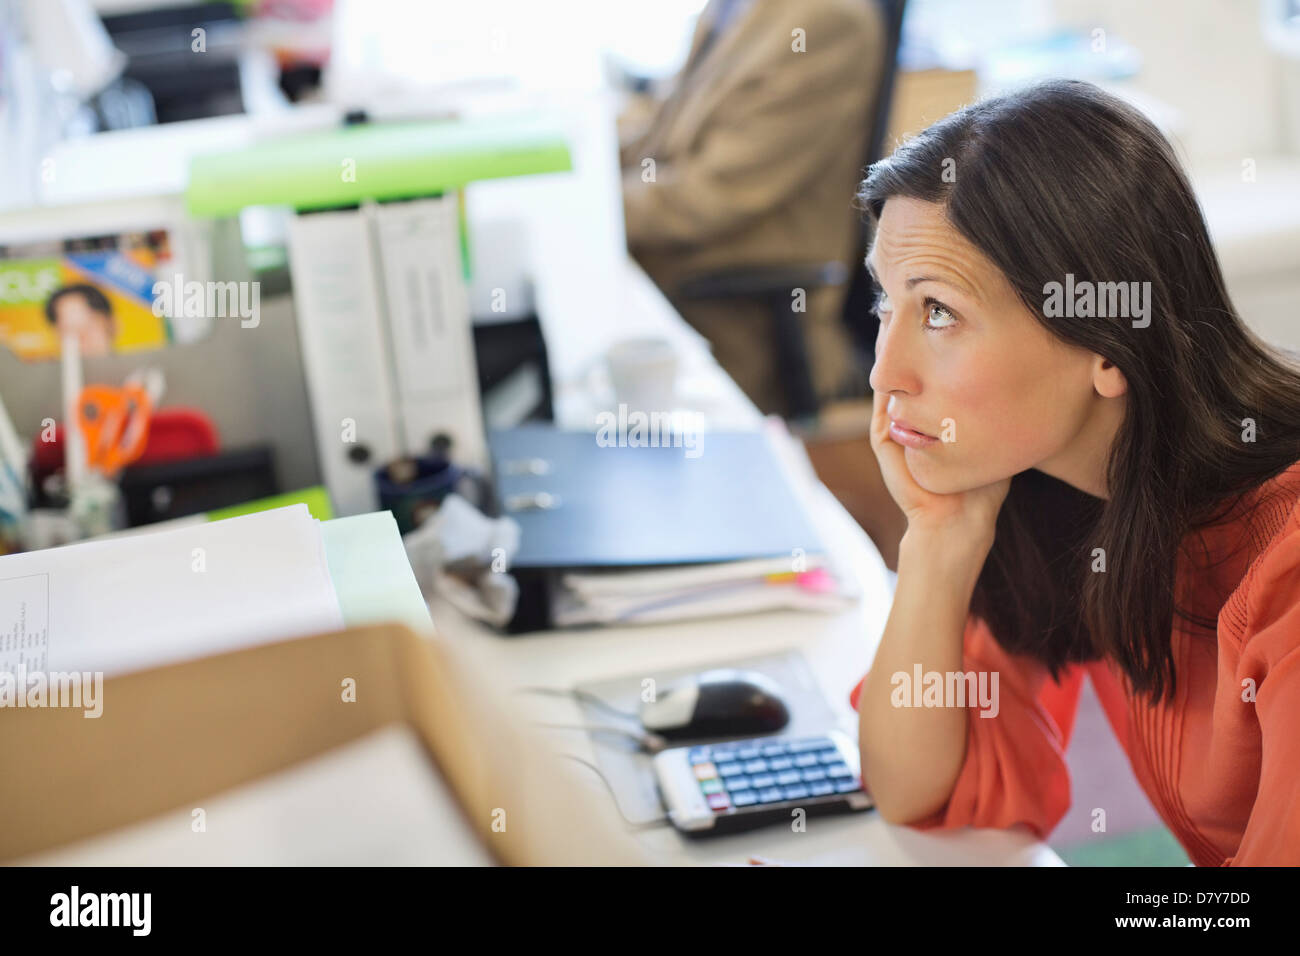 Businesswoman resting chin in hand on desk - Stock Image